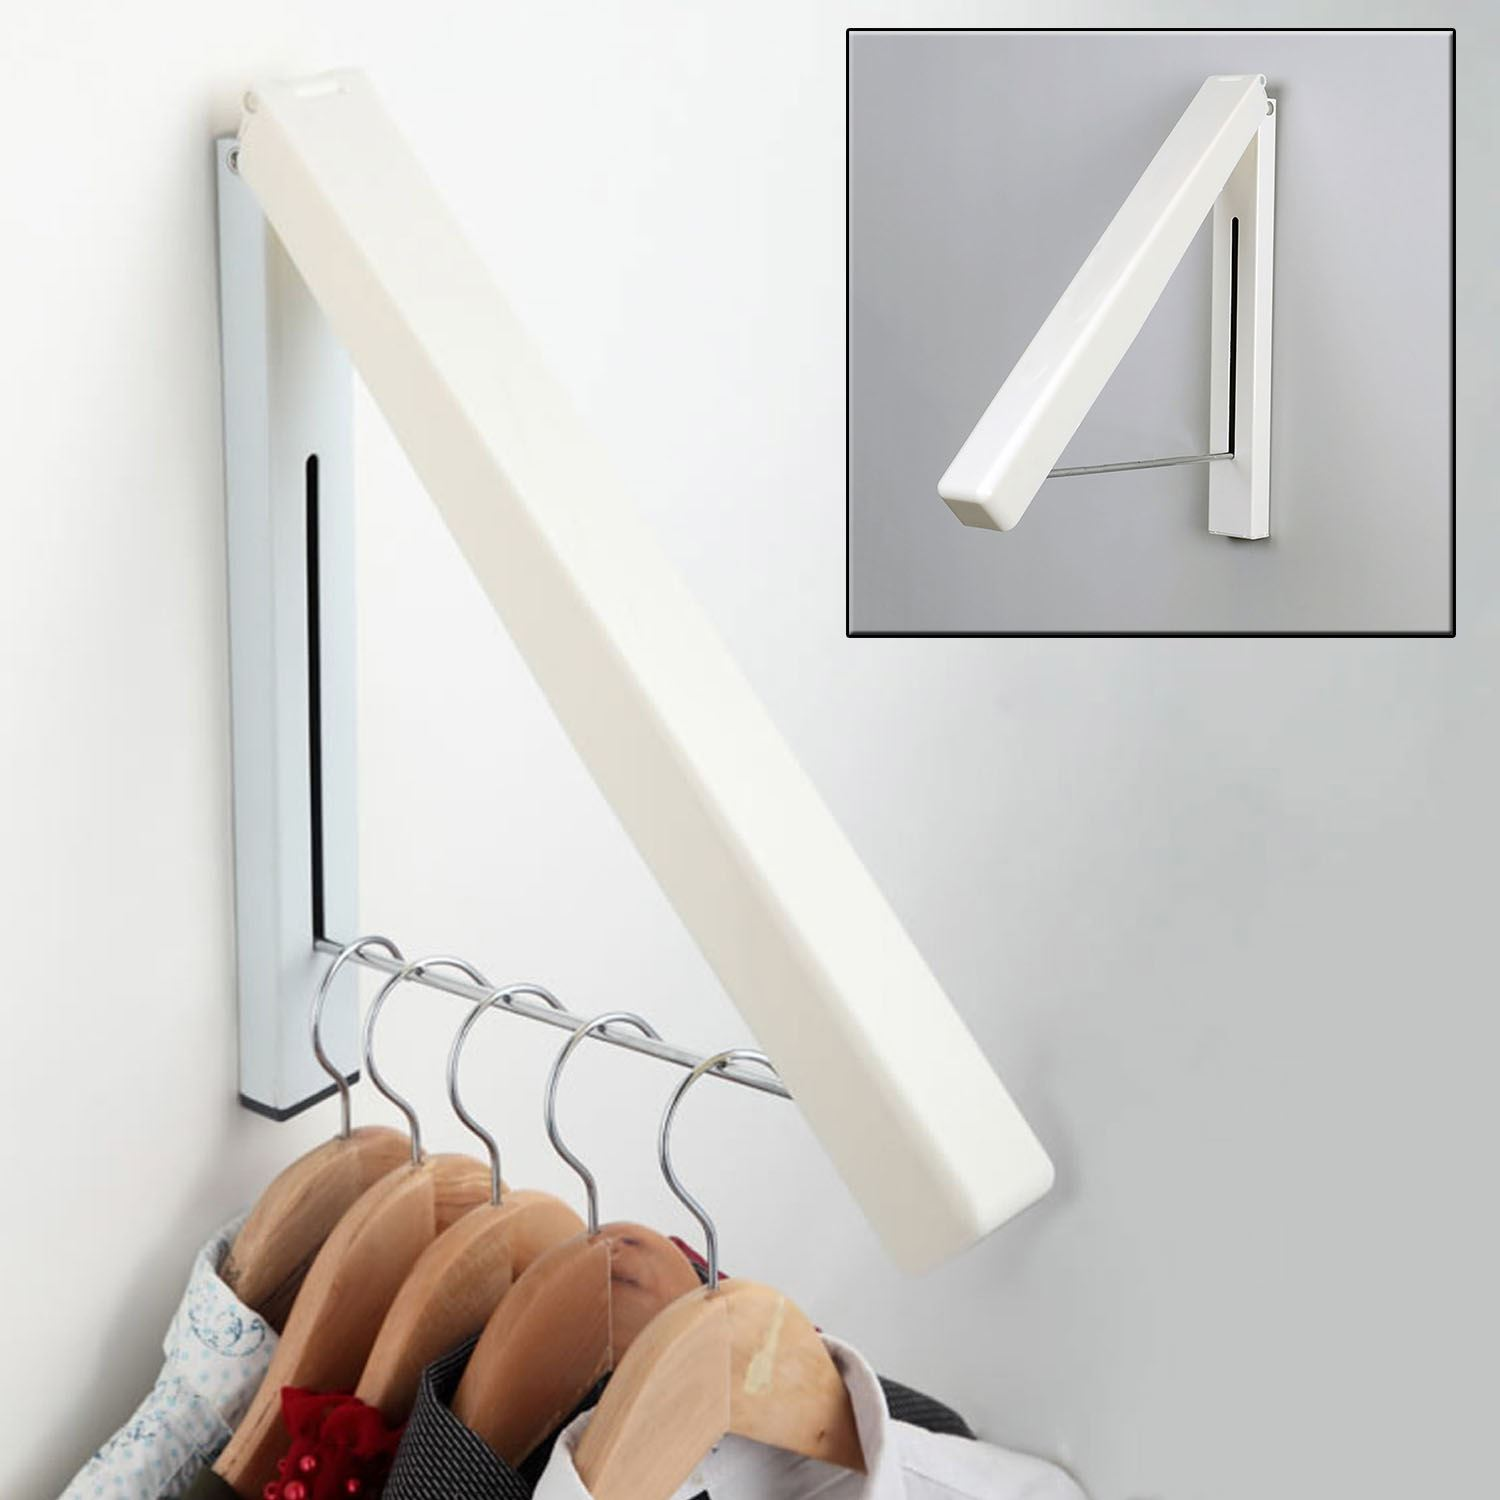 Wall Mounted Retractable Laundry Clothes Hanger Rail Rack Storage Organiser